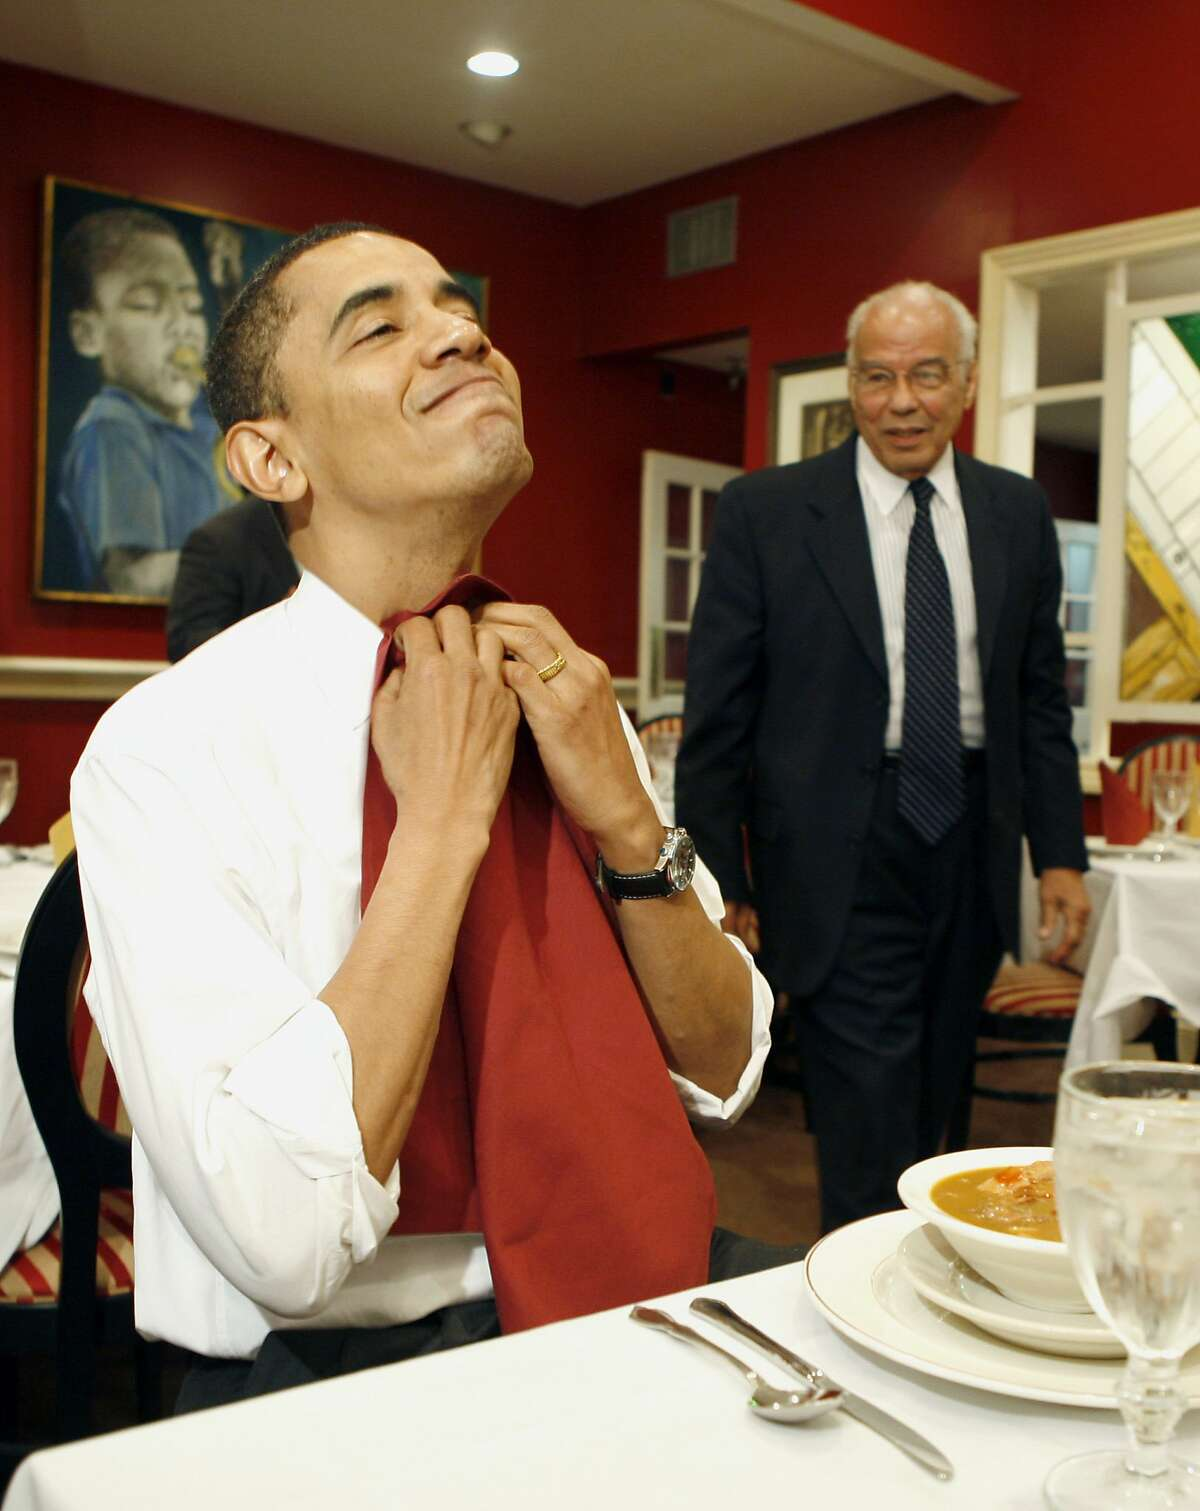 US Democratic presidential candidate Illinois Senator Barack Obama puts on a napkin while eating gumbo with the Chairman of Louisiana Recovery Authority Dr Norman Francis (R) during his visit of Dooky Chase restaurant in New Orleans, Louisiana, February 7, 2008. Obama was in New Orleans, ahead of Louisiana's primary on February 9, and said the aftermath of Hurricane Katrina which ravaged the city in 2005 was a metaphor for a broken US government. AFP PHOTO/EMMANUEL DUNAND (Photo credit should read EMMANUEL DUNAND/AFP/Getty Images)